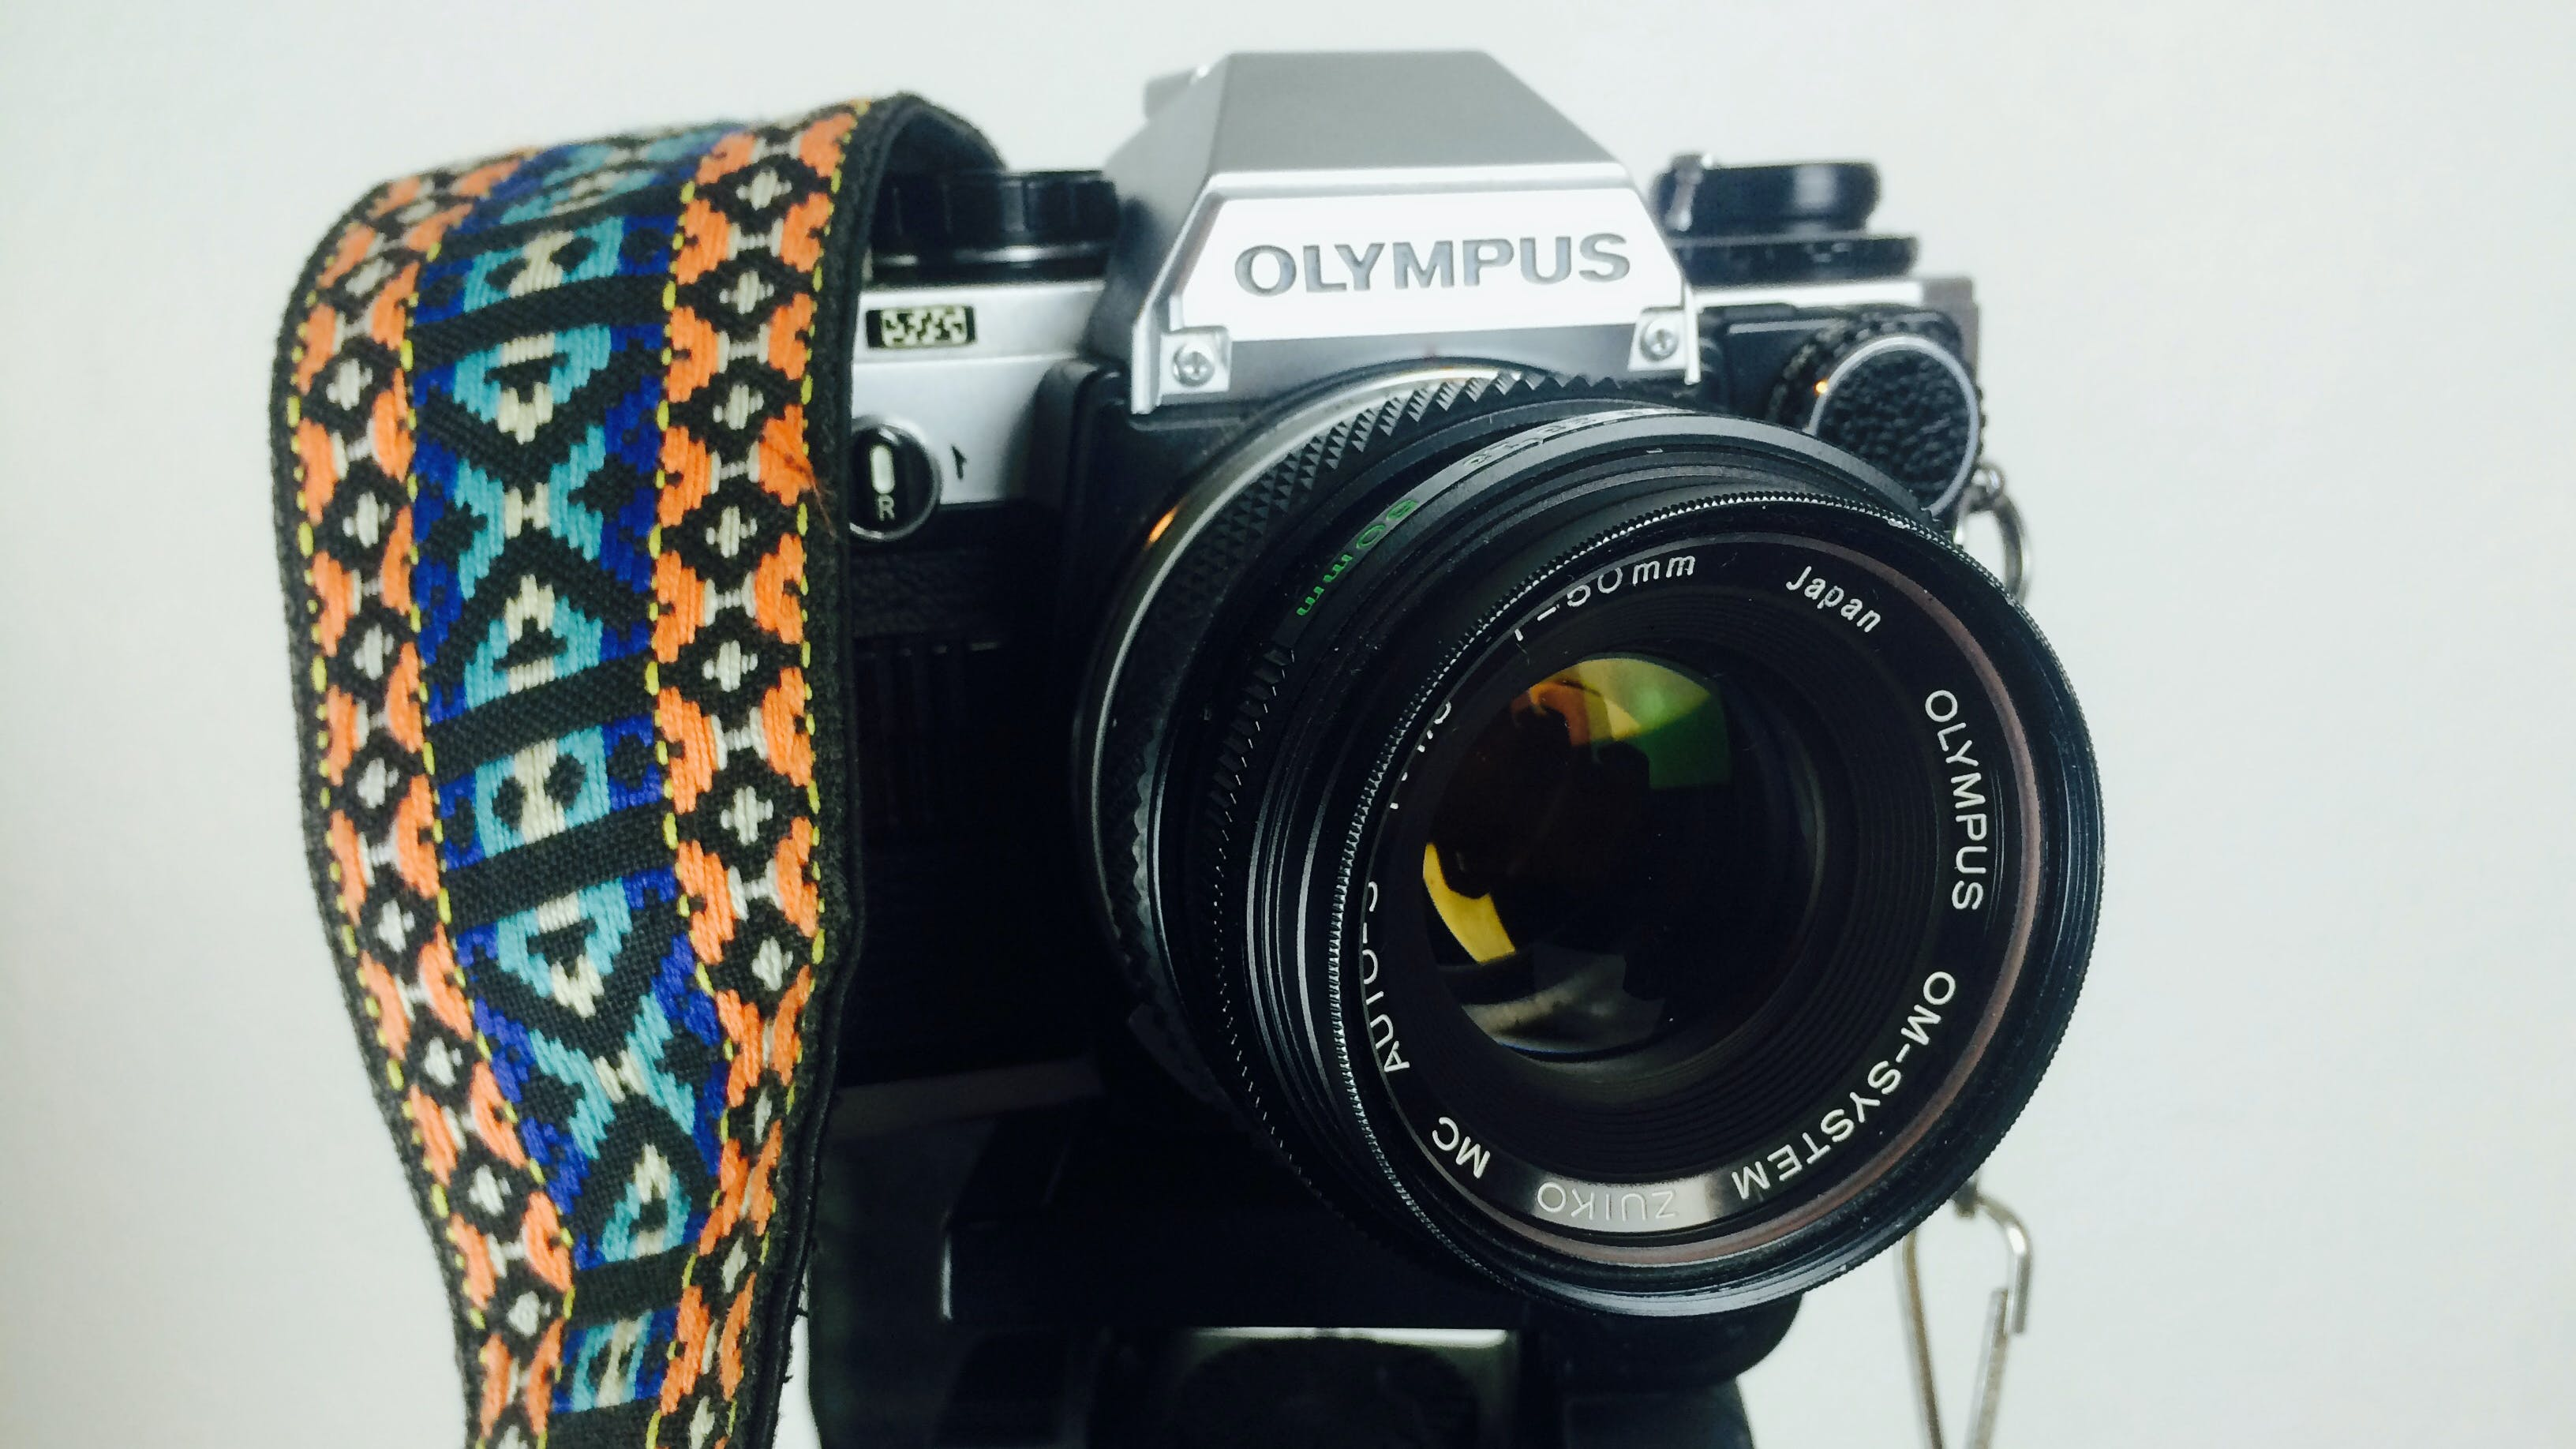 Black and Gray Olympus Dslr Camera White Orange Blue and White Strap